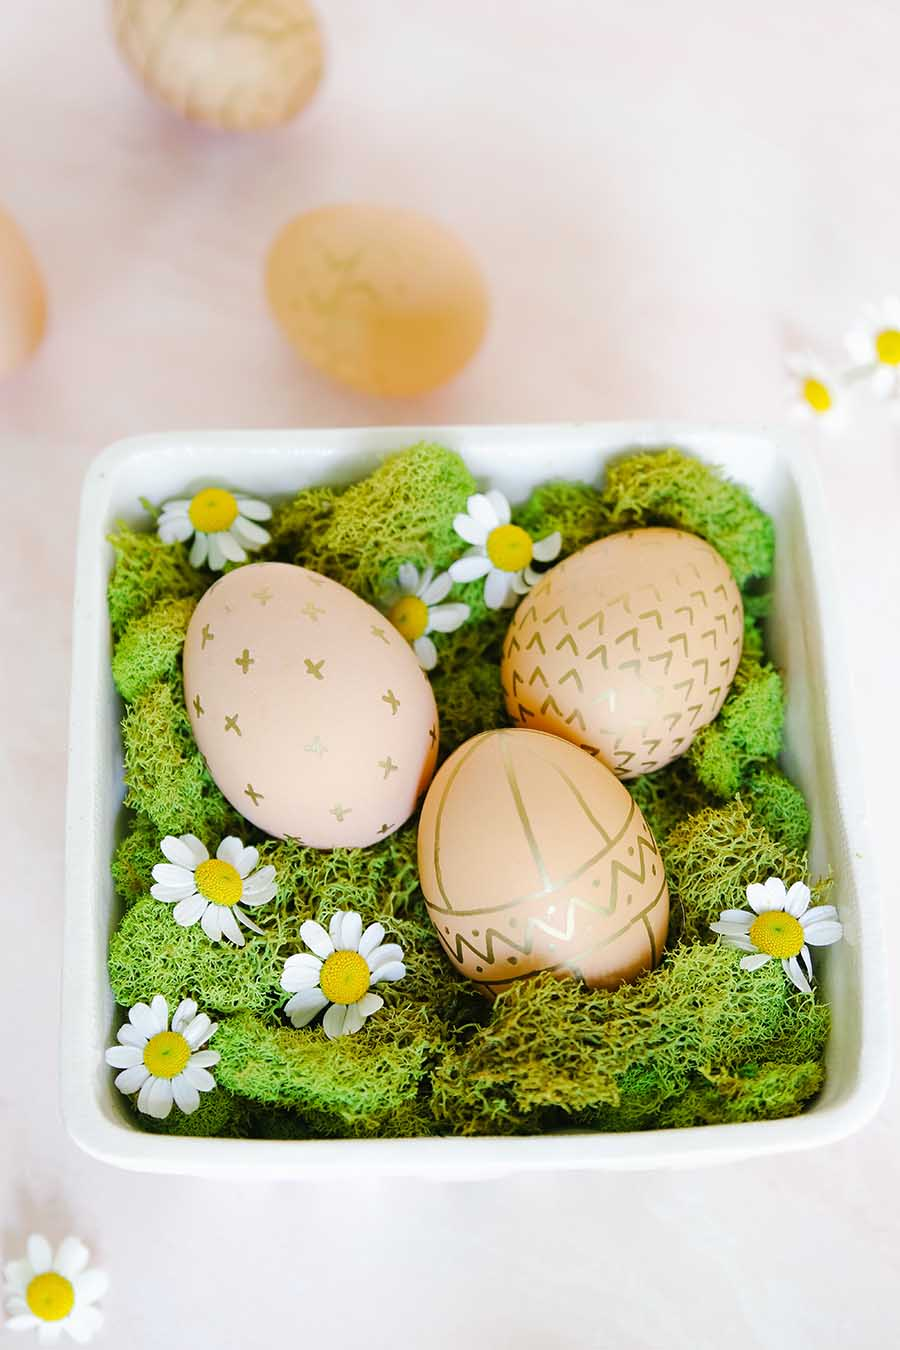 How to decorate brown eggs